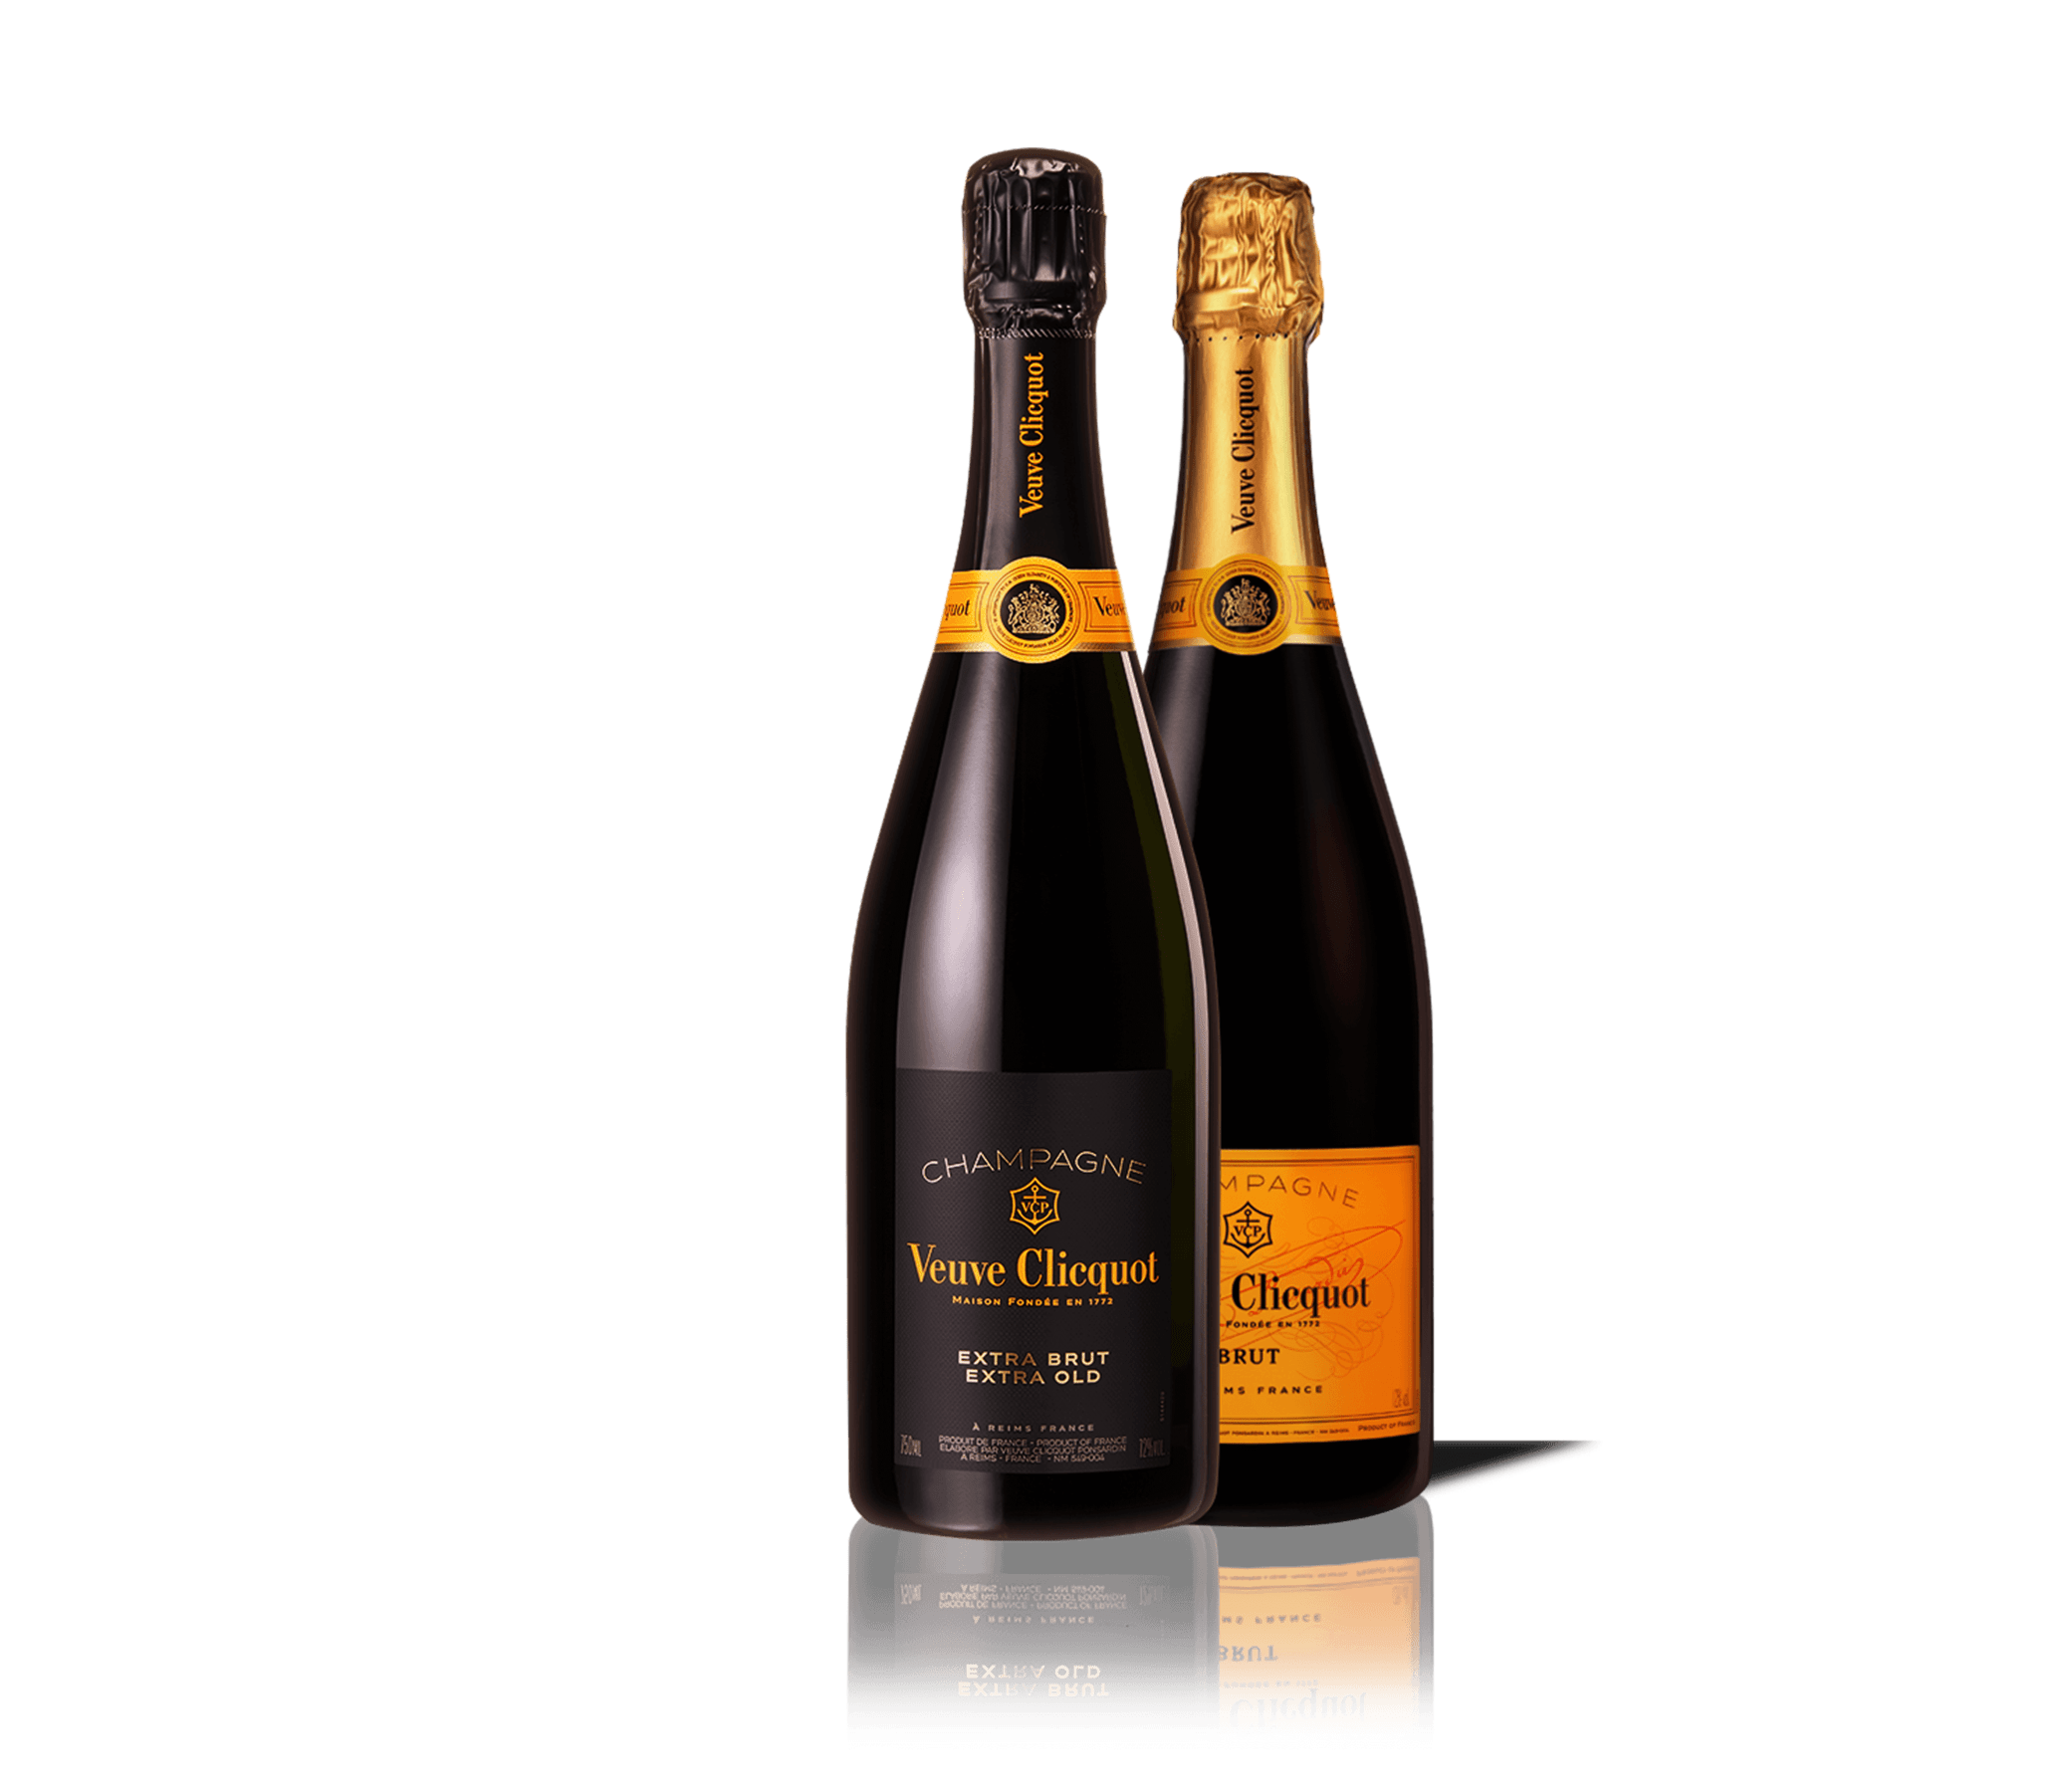 Botella de champagne Veuve Clicquot Extra Brut Extra Old 1